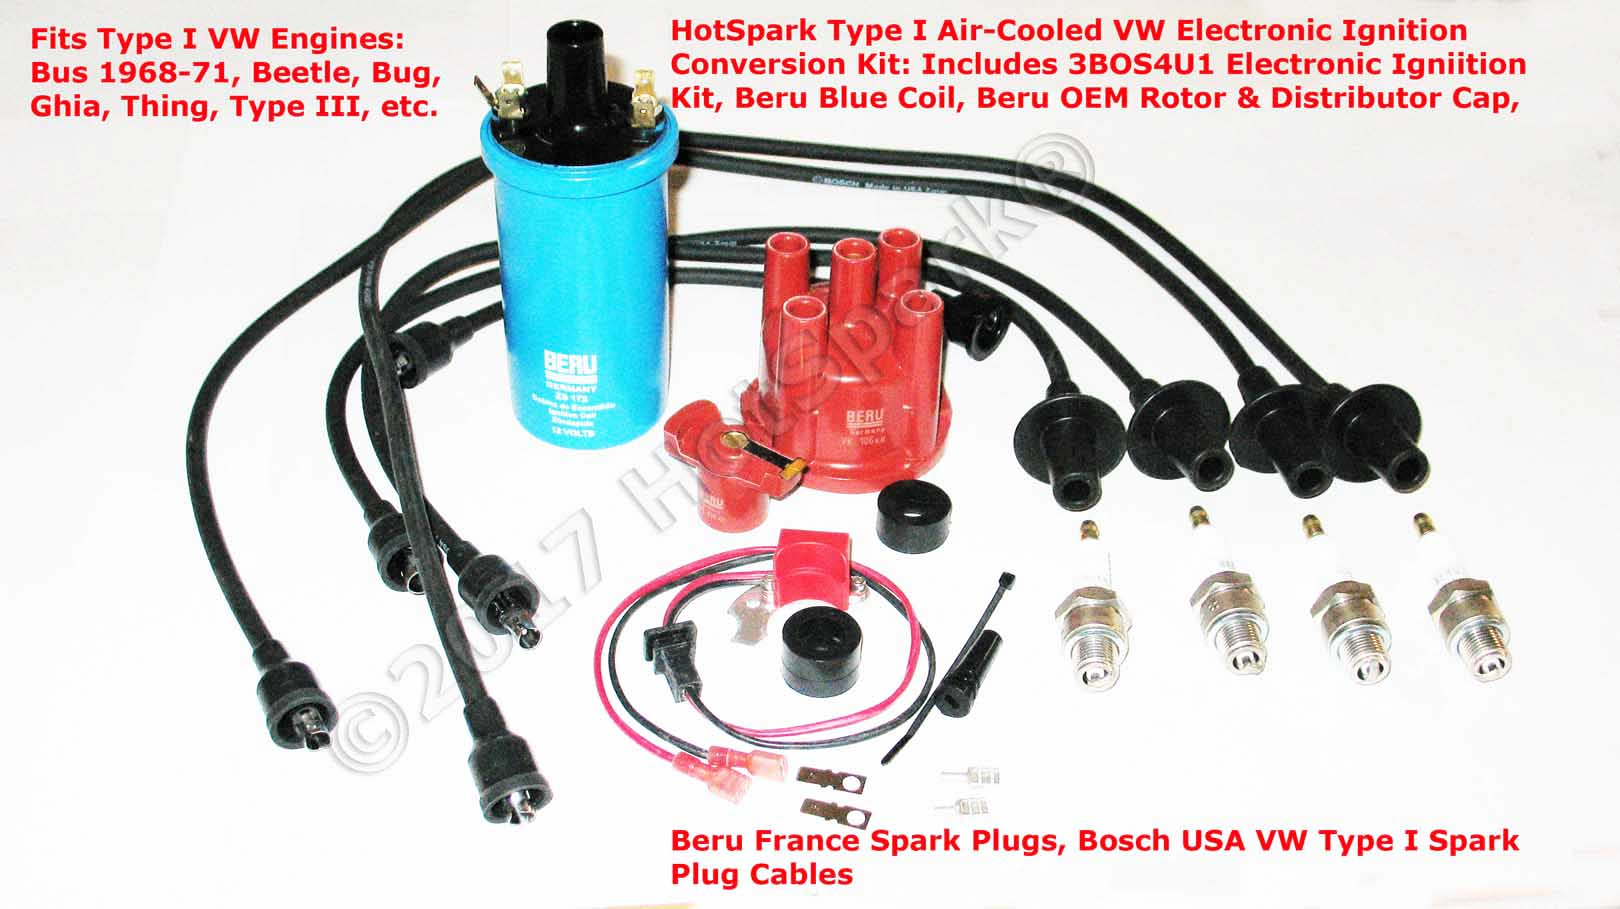 HotSpark 3BOS4U1 Electronic Ignition Conversion Kit plus BeruGermany Blue Coil, Beru France Spark Plugs, Bosch USA Spark Plug Wire Combo